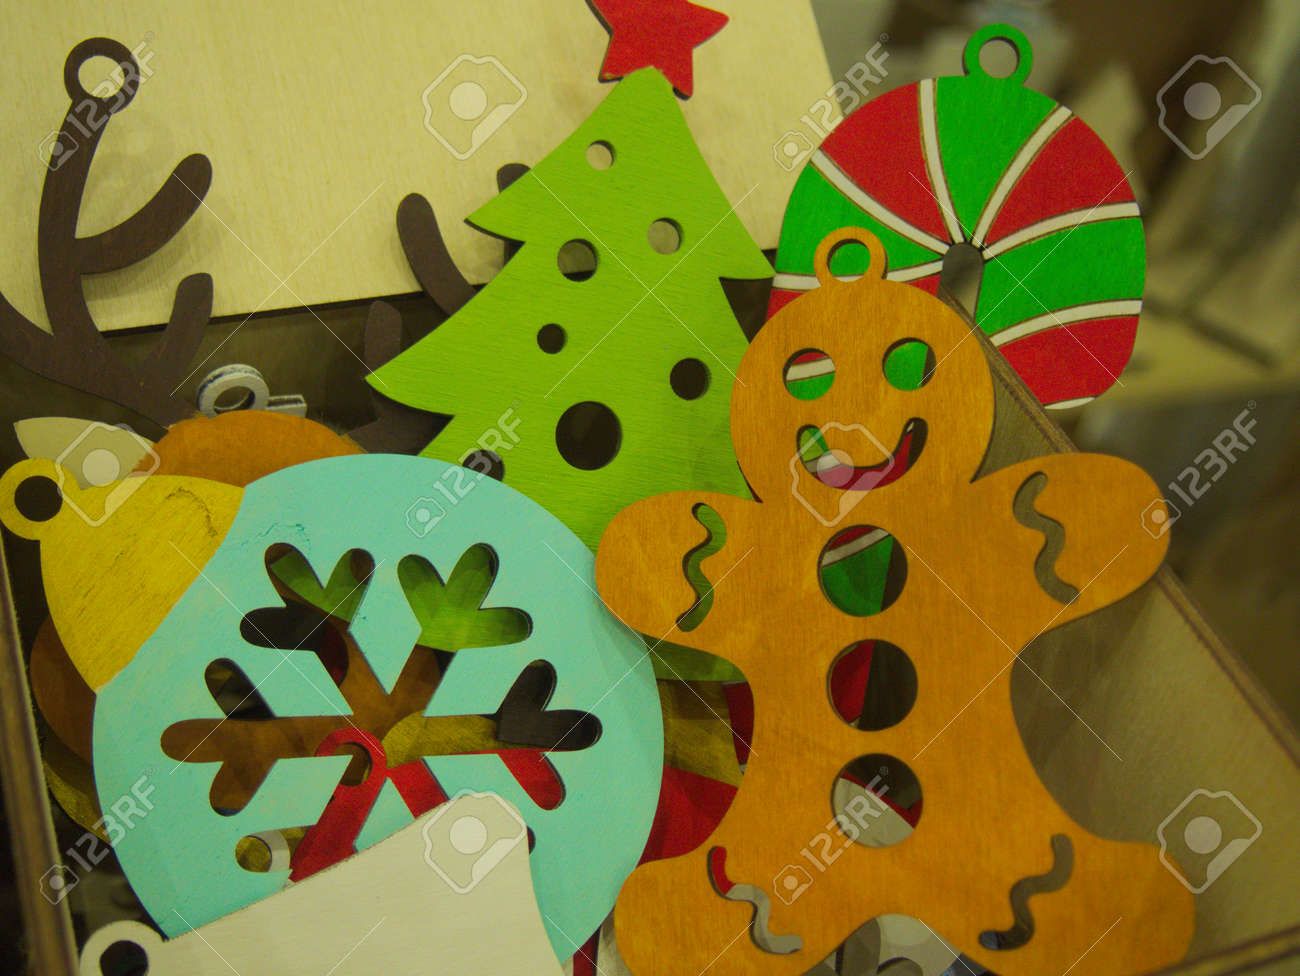 Painted Wooden Gingerbread Man And Snowflake Figurine On A Christmas